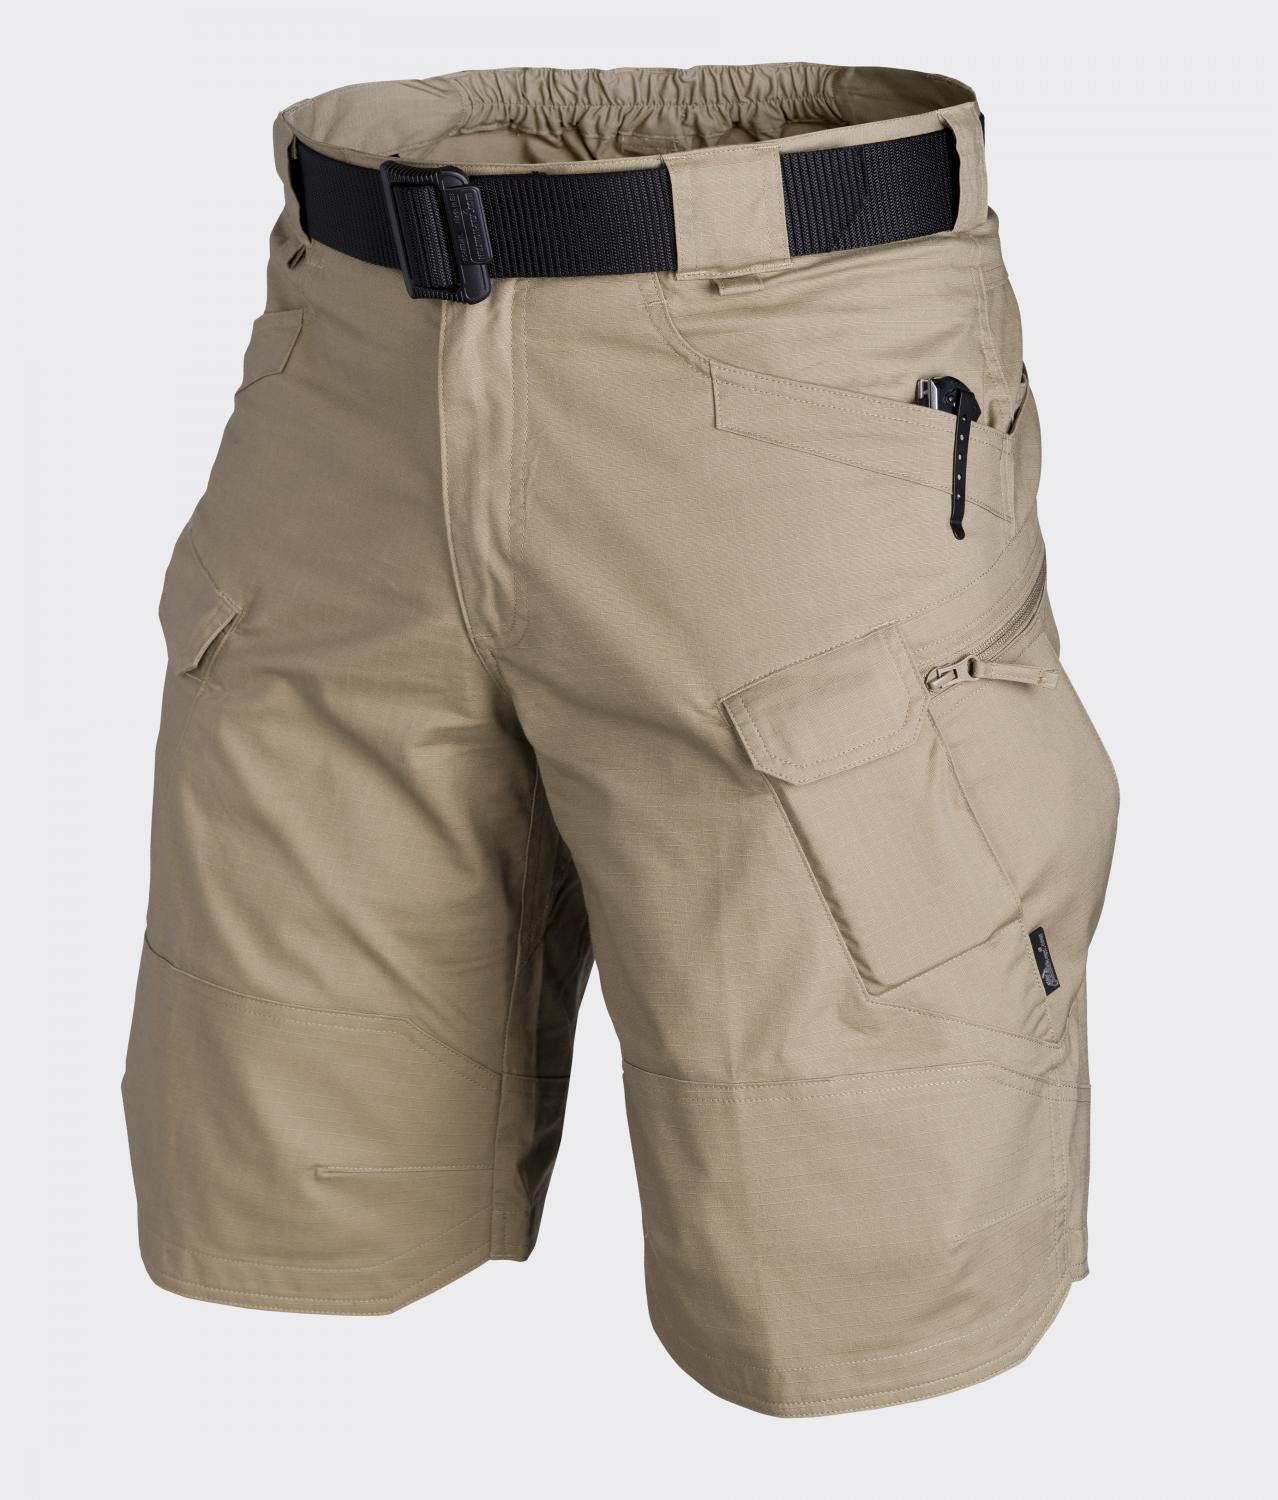 URBAN TACTICAL SHORTS® 11'' - PolyCotton Ripstop Khaki